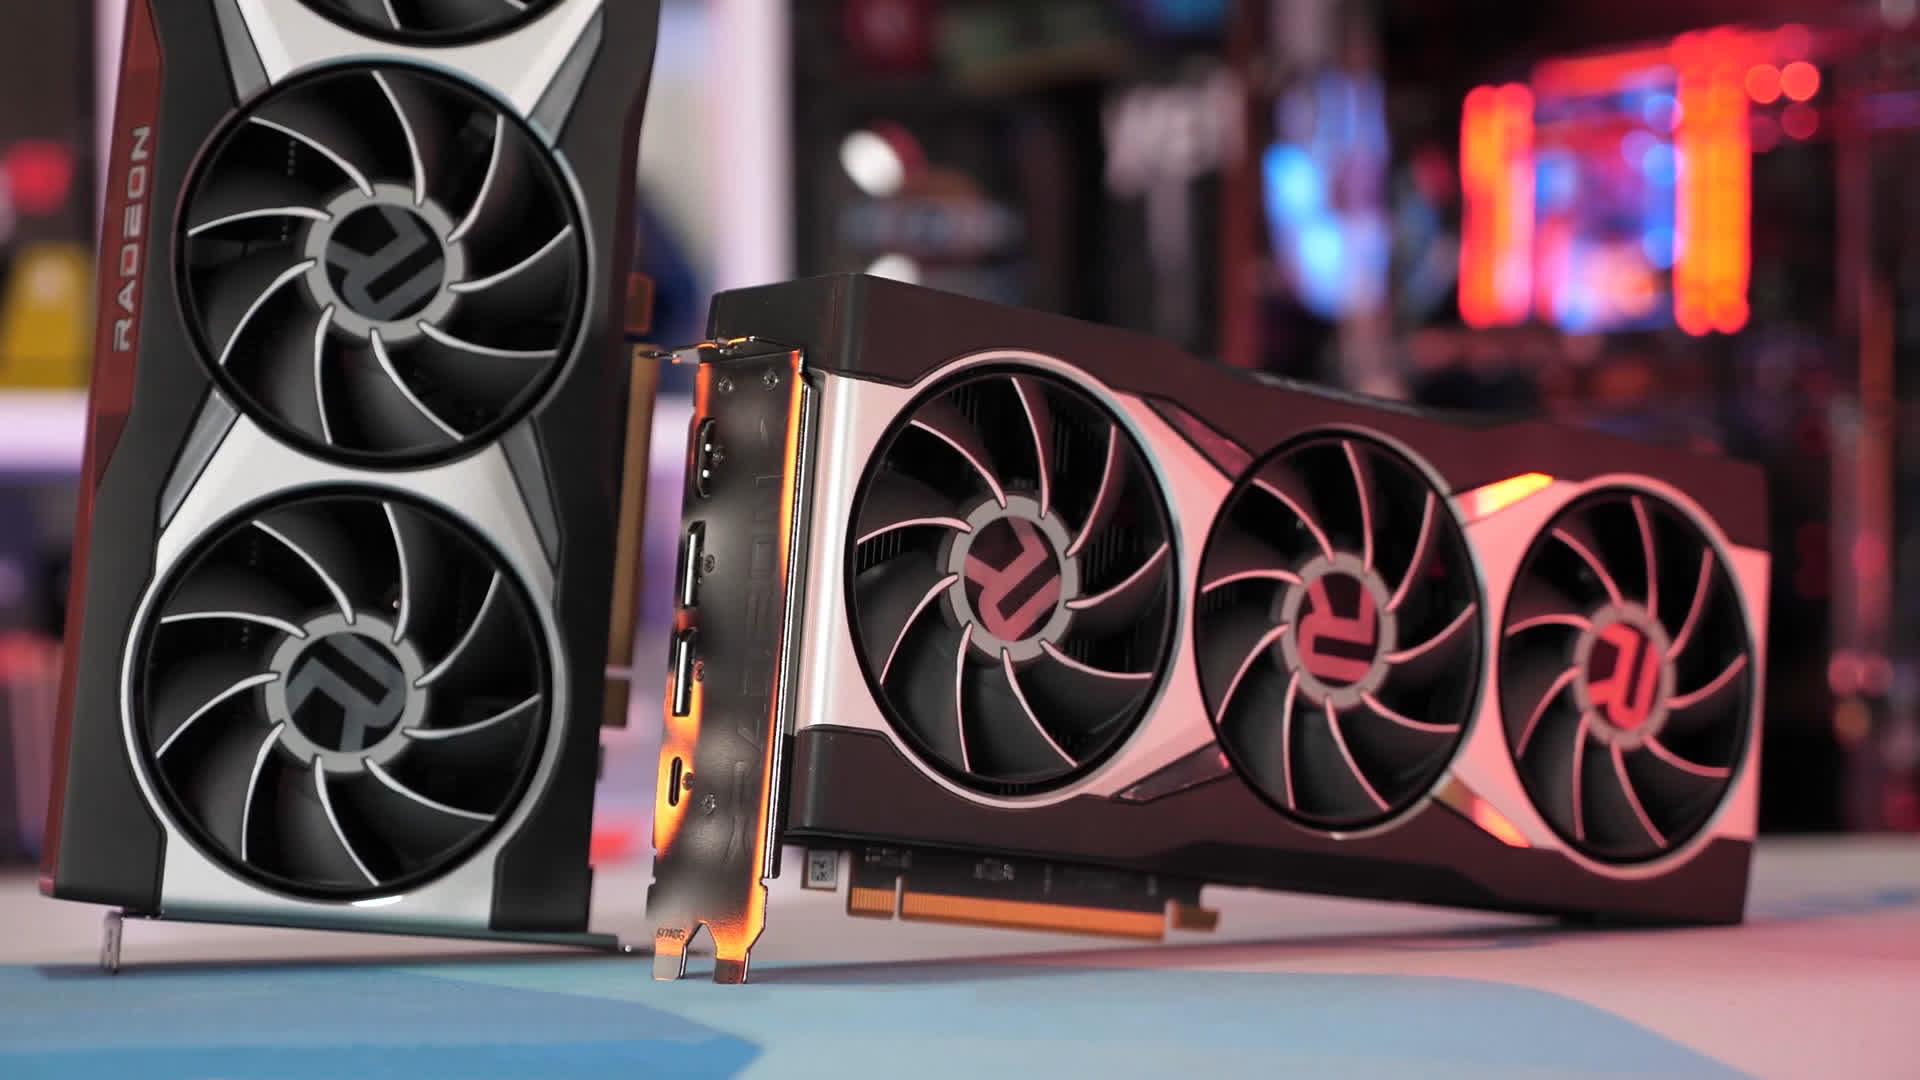 AMD's new RDNA2 PCI IDs on Linux driver suggest a RDNA2 refresh might be coming